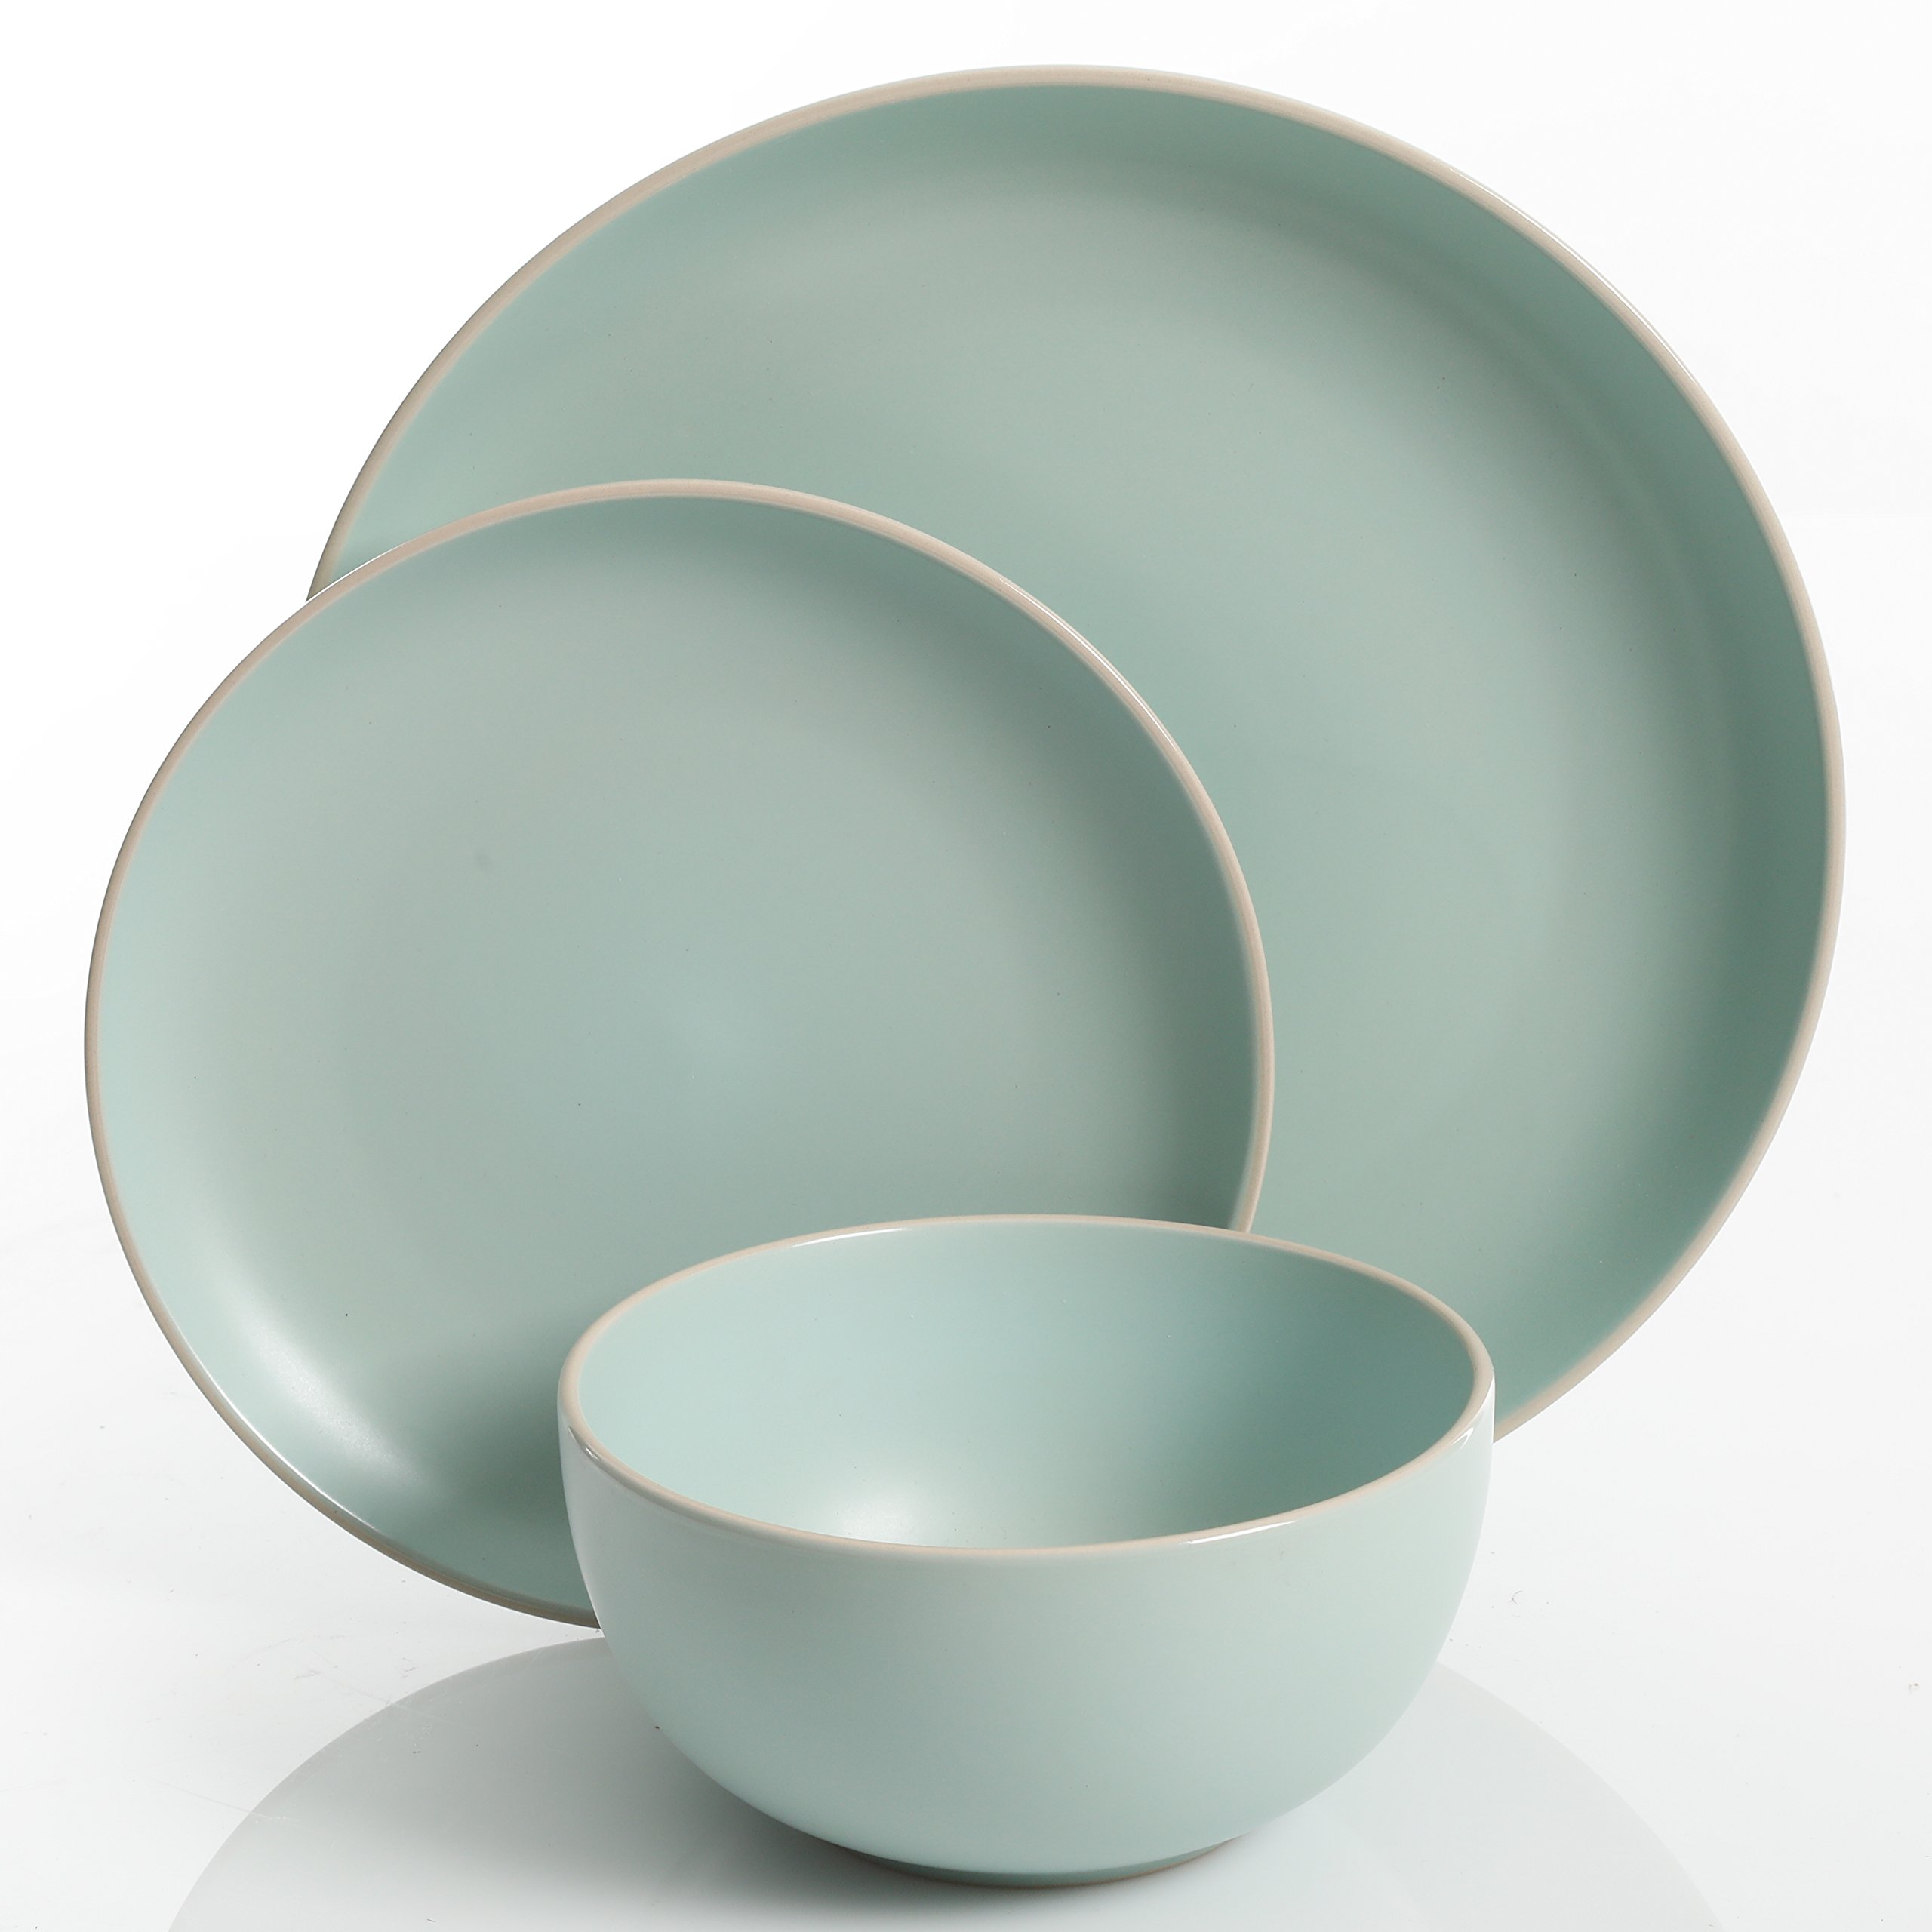 Gibson Home Rockaway 12-Piece Dinnerware Set Service for 4, Teal Matte by Gibson Home (Image #3)